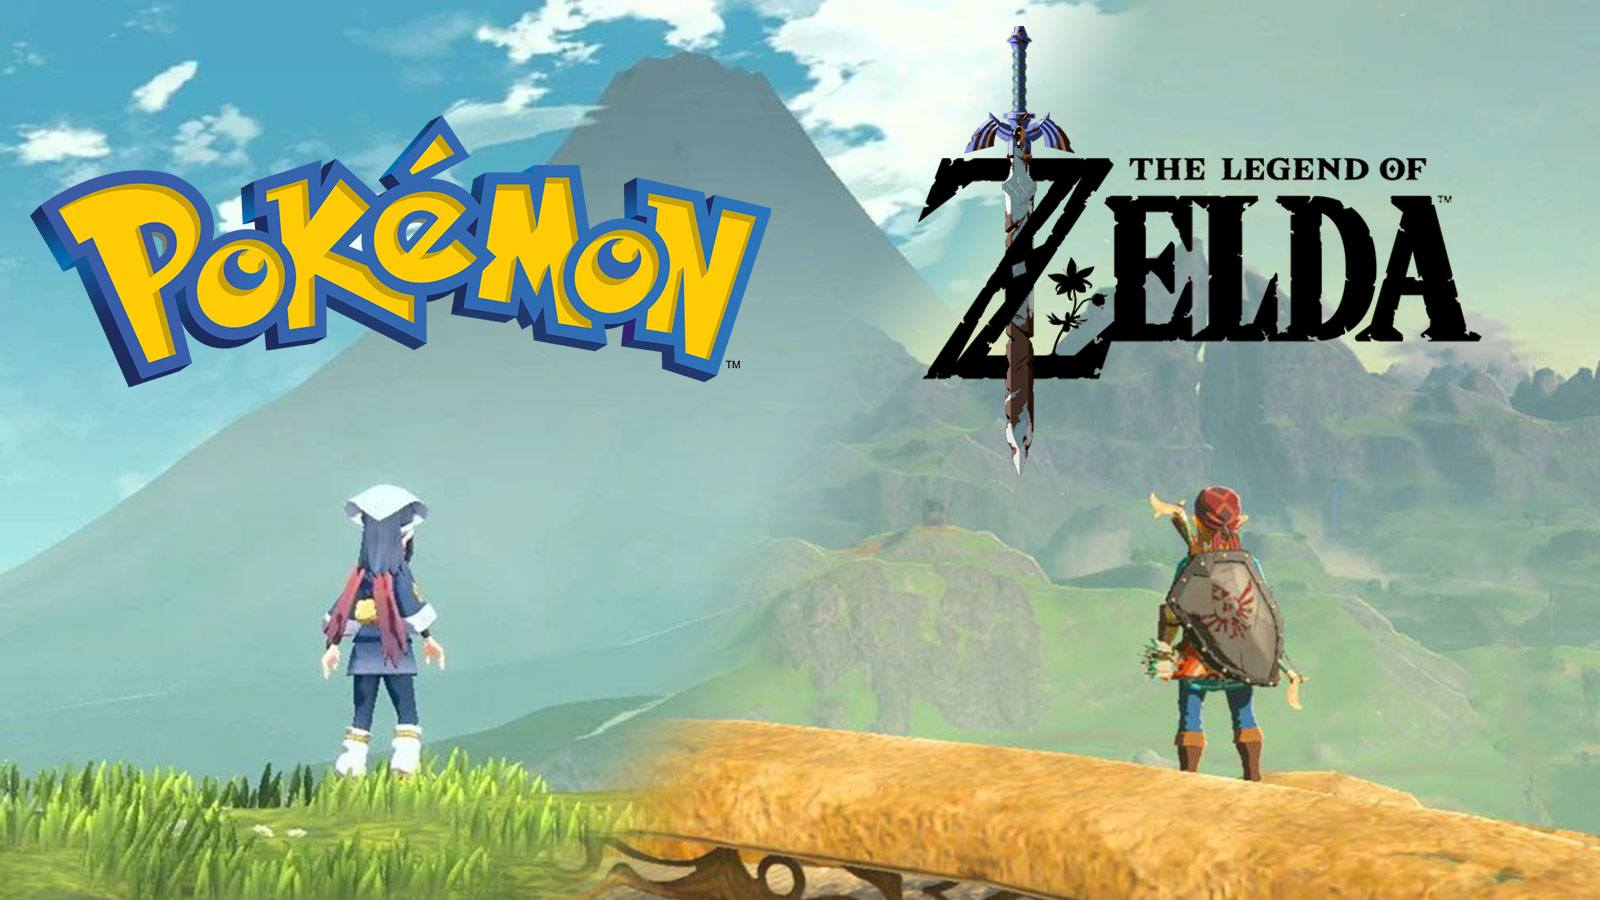 Pokémon copie Zelda ?